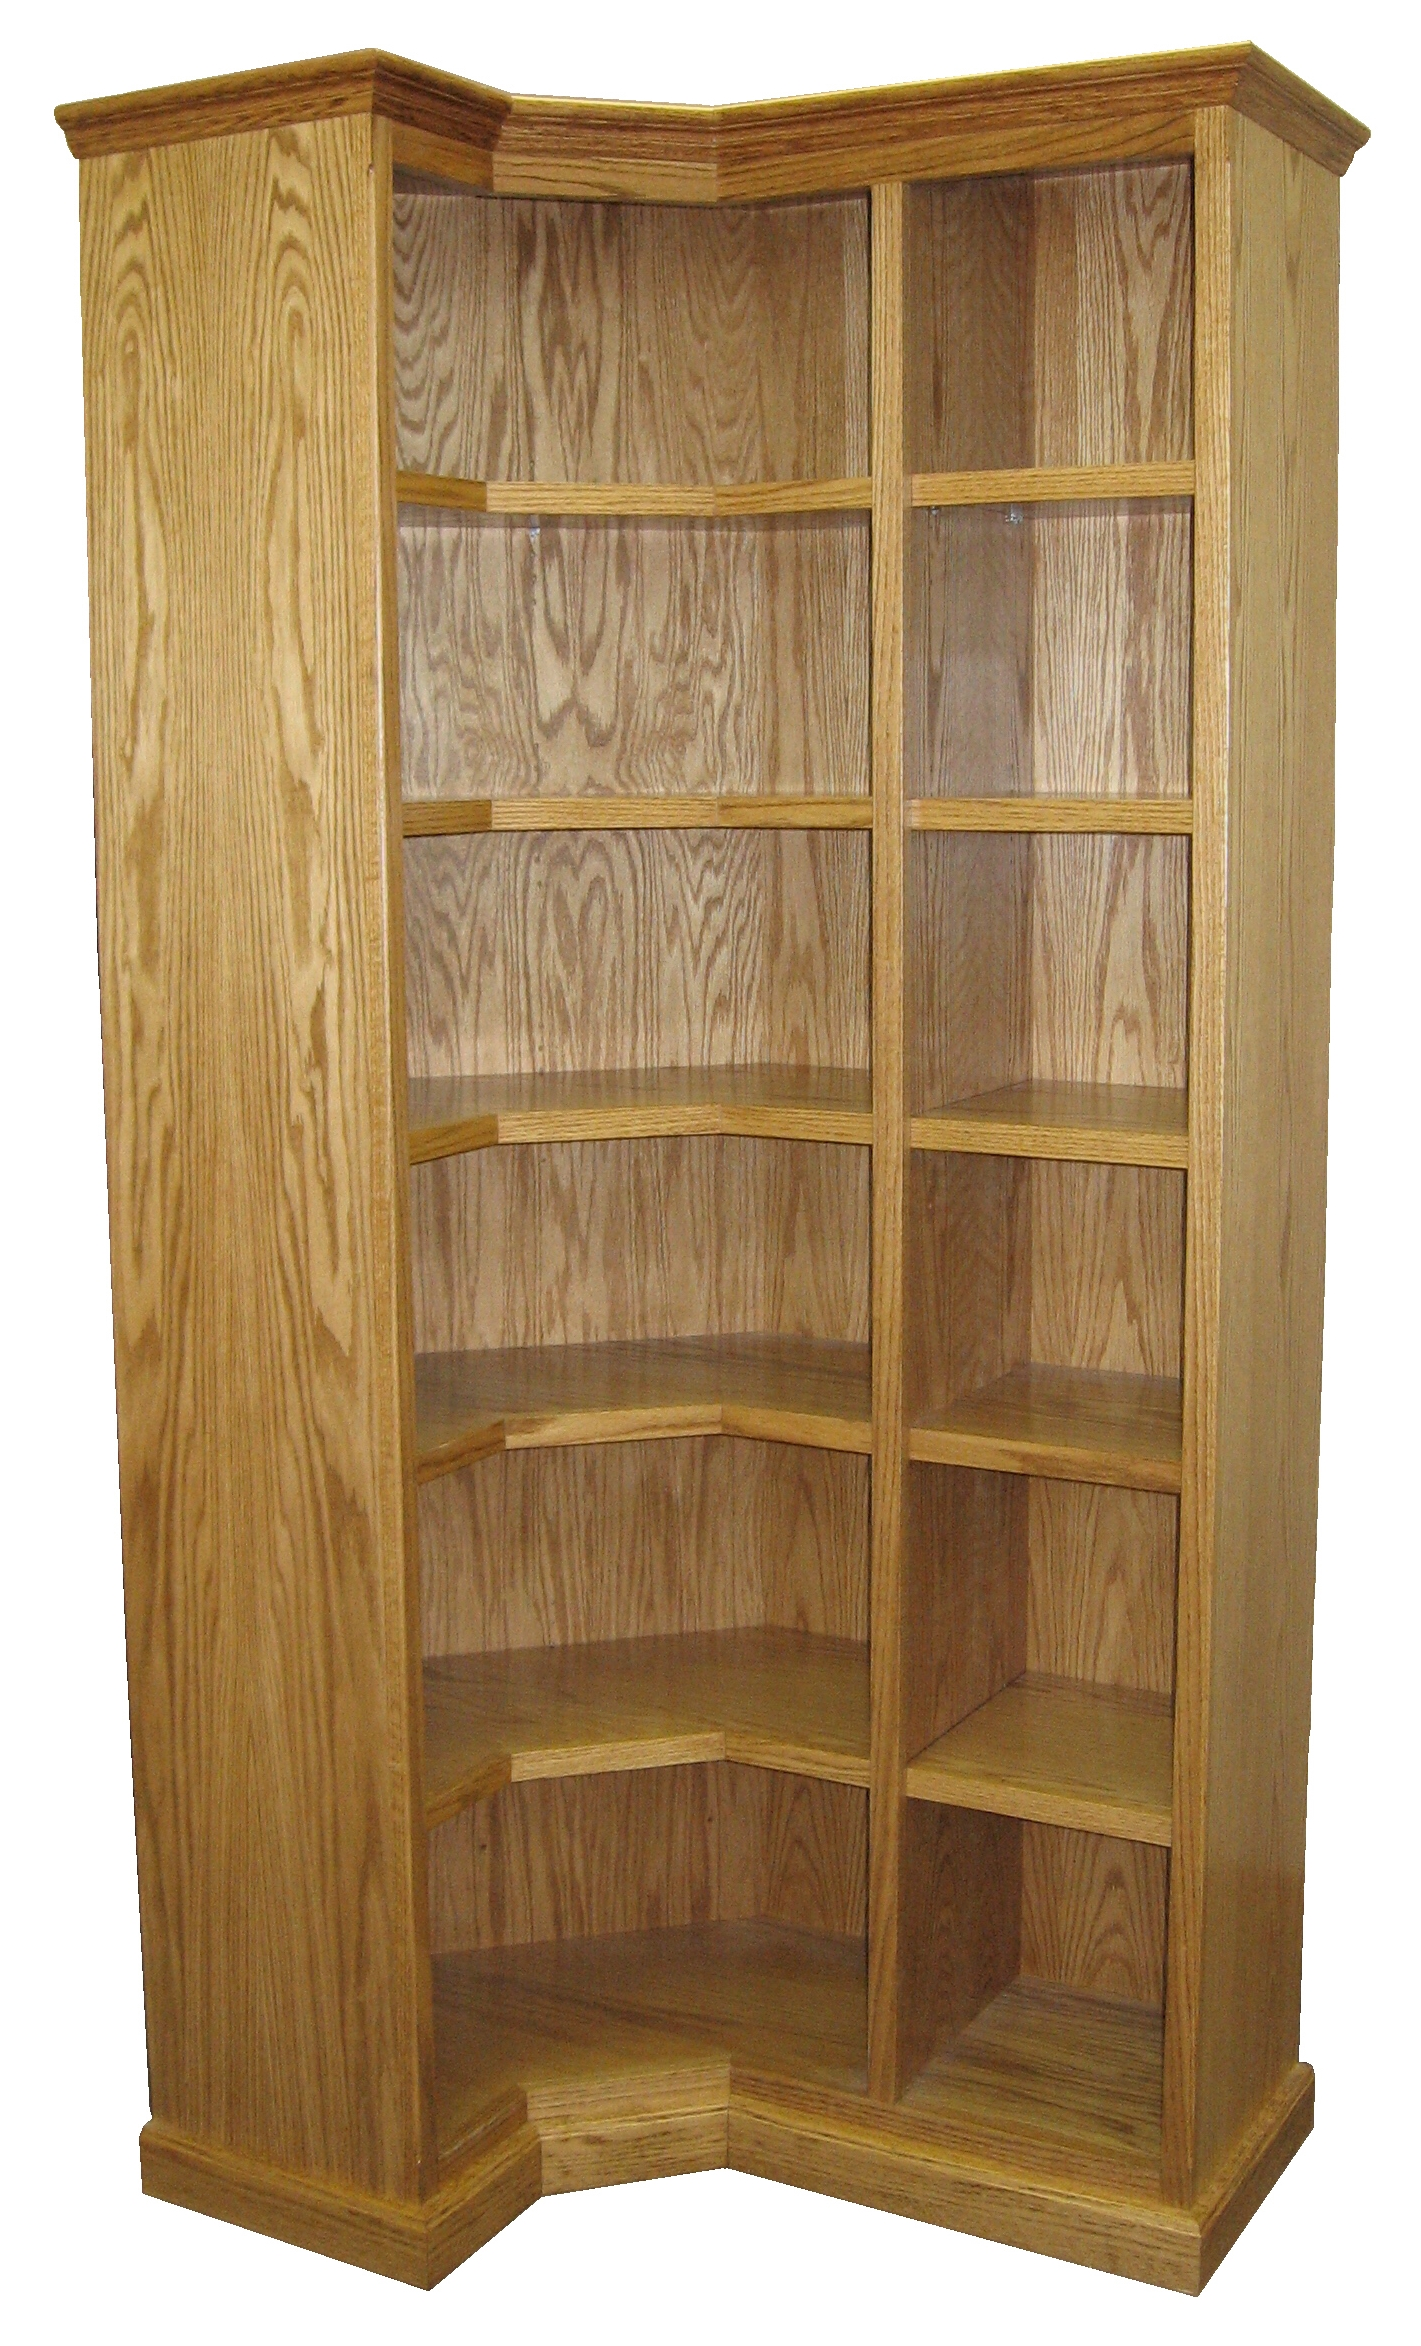 traditional-style-custom-oak-book-shelf.JPG